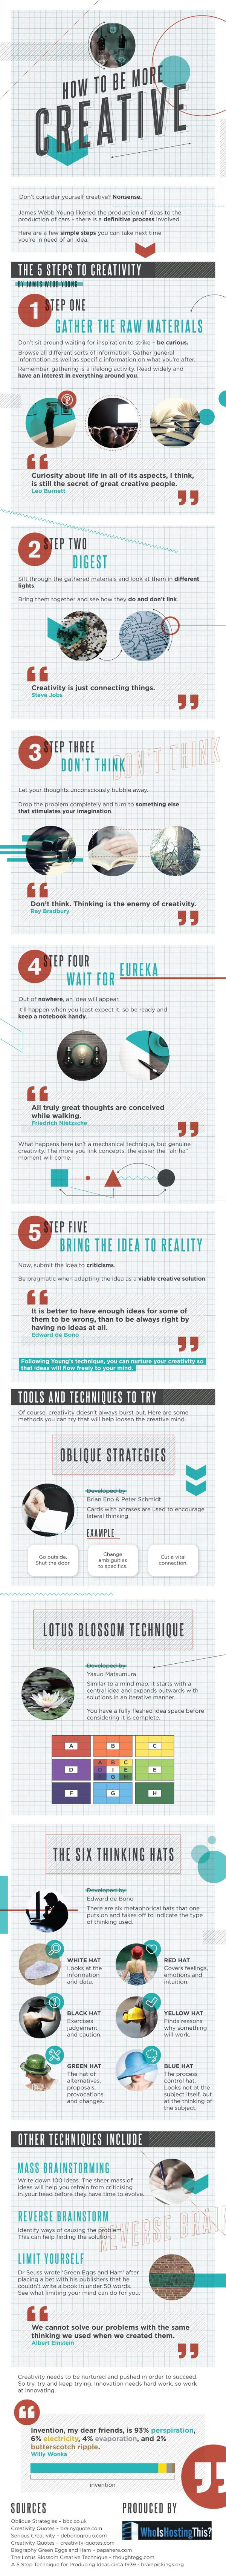 6 Strategies for Creative Thinking by iCraftopia.com